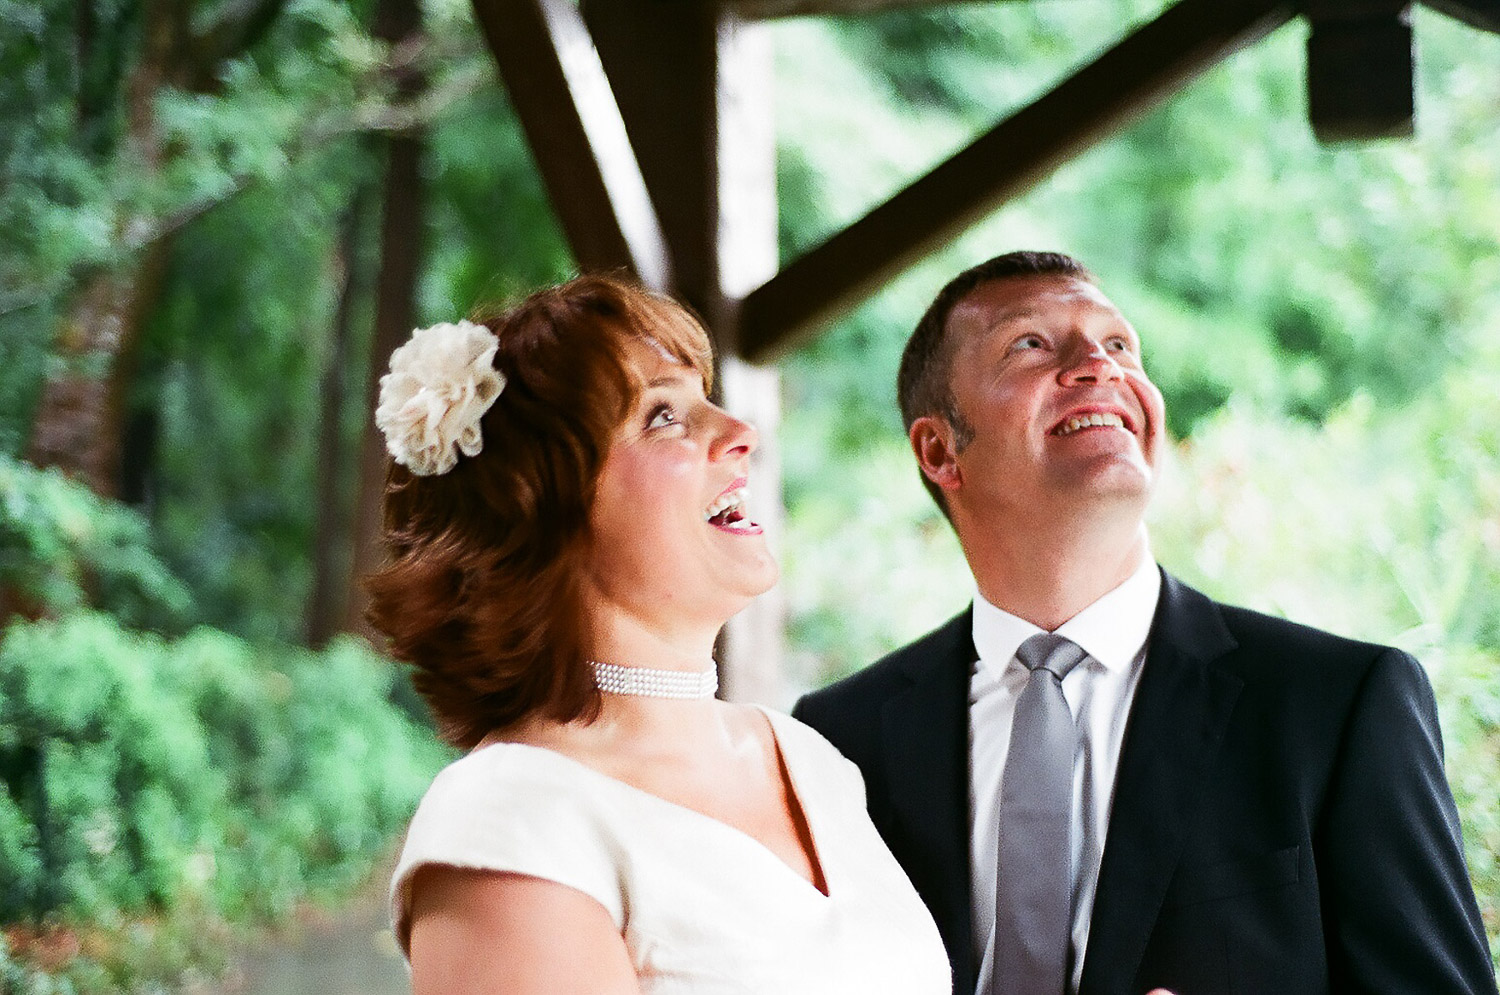 quirky elopement wedding day photo by wendy g photography